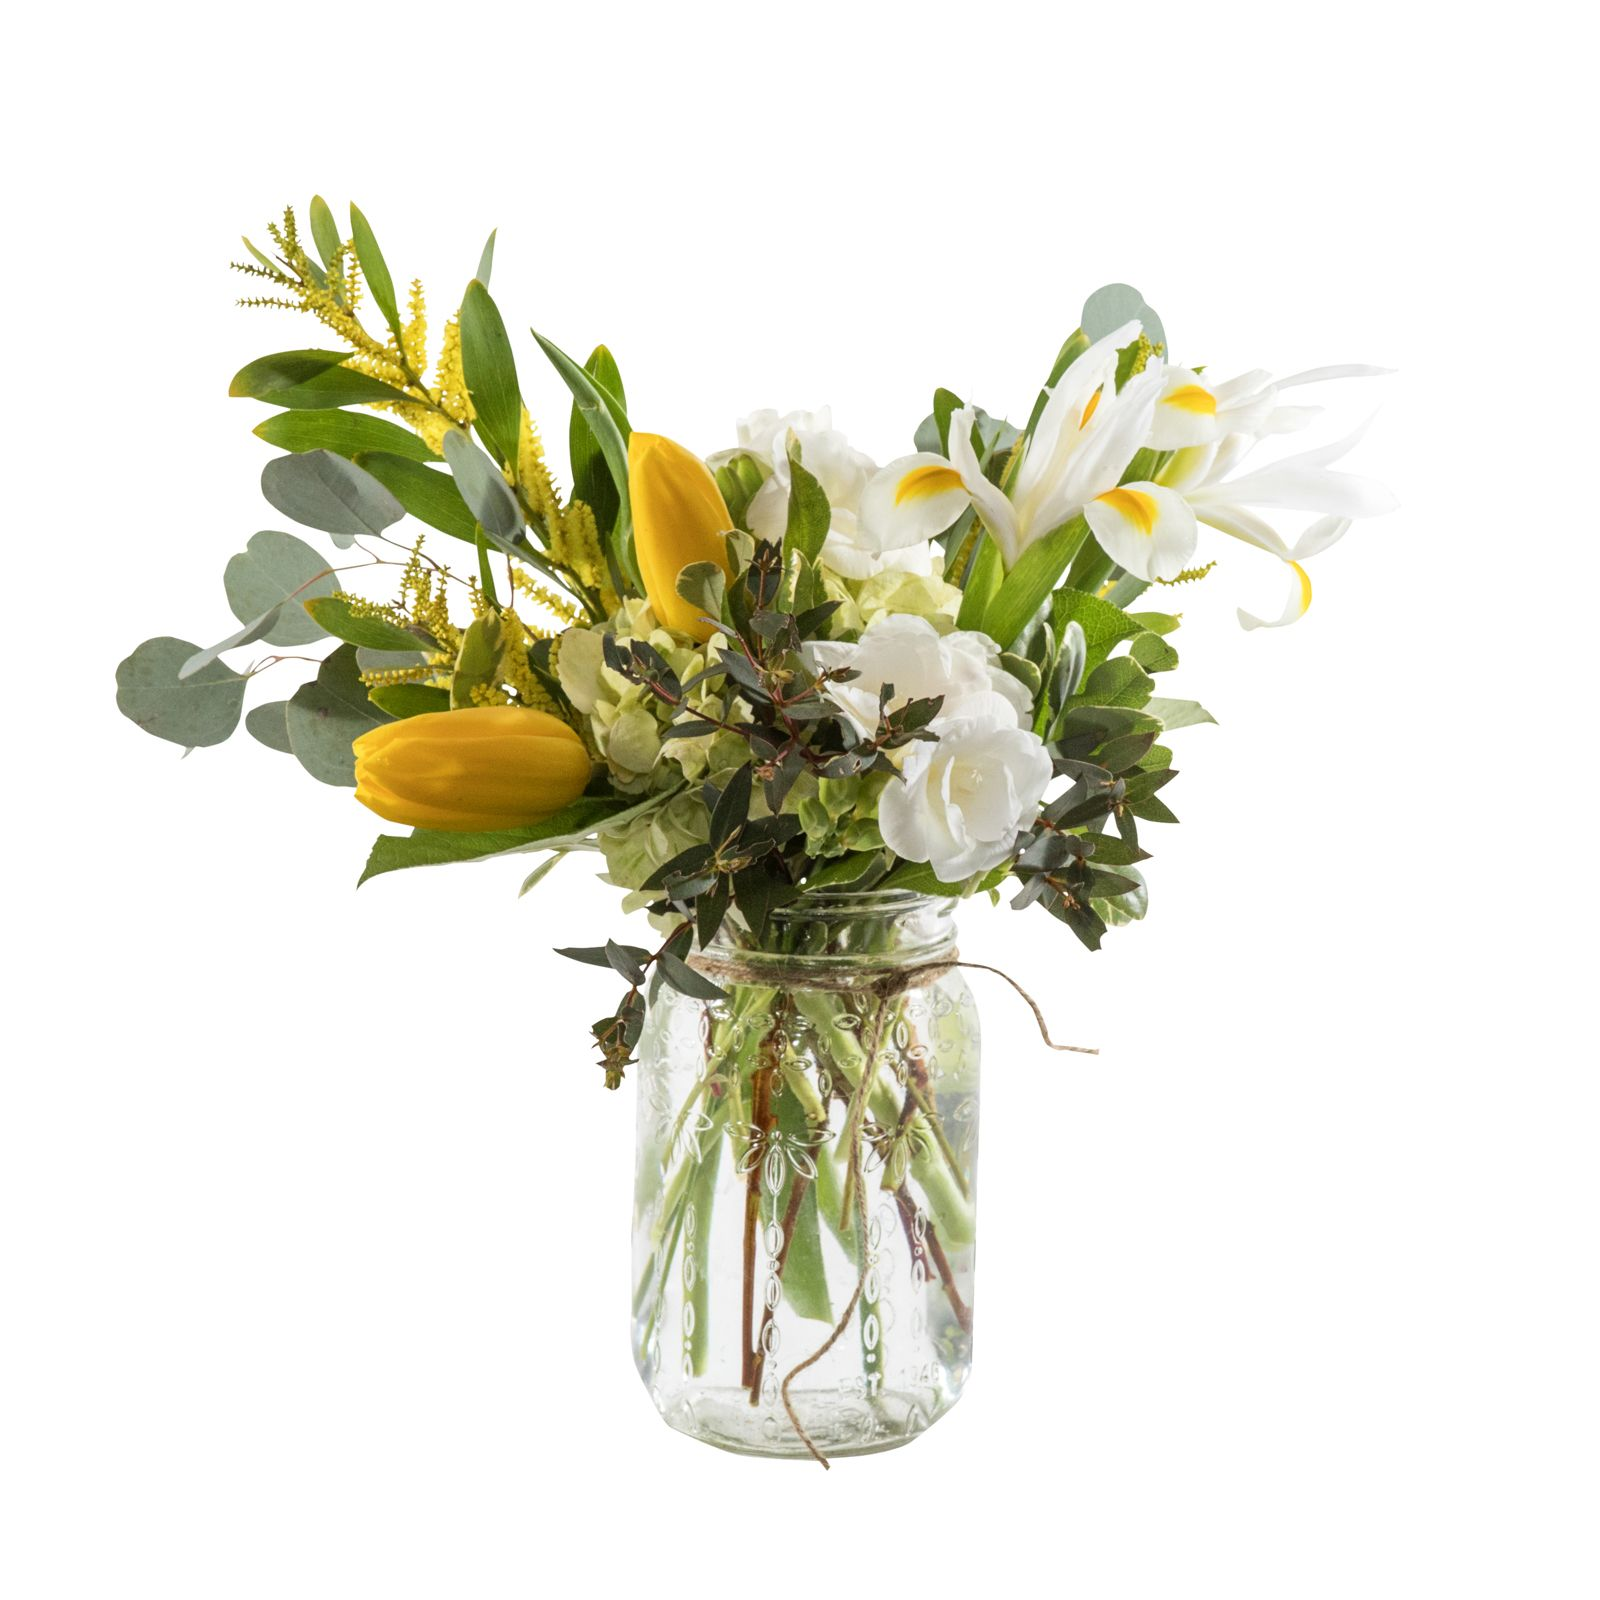 Mason jar florals featuring mustard yellows and white